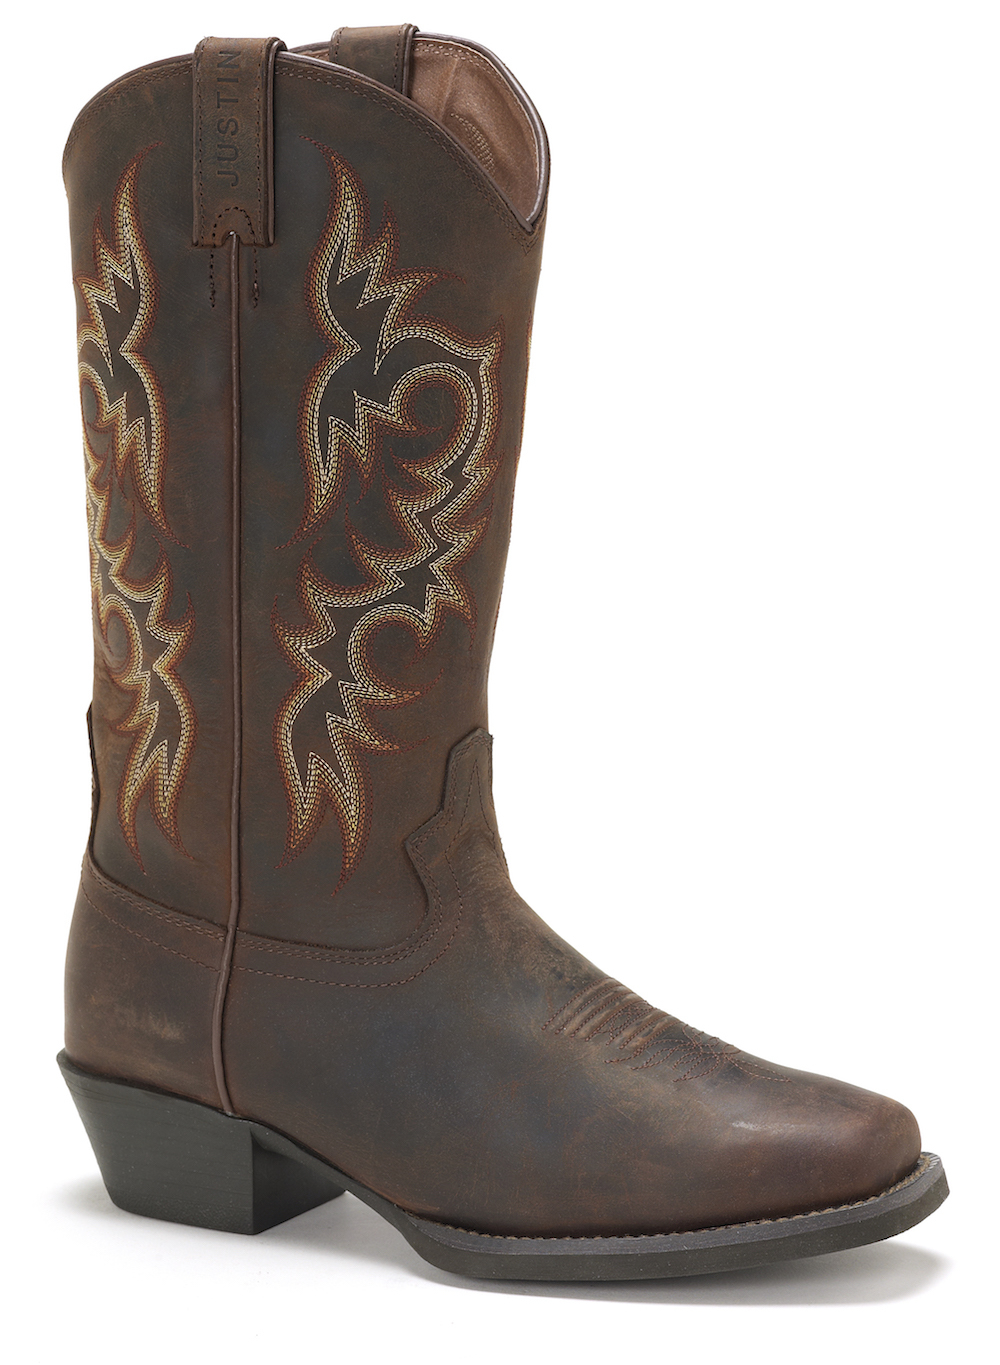 Men S Western Cowboy Boots Afterpay Amp Free Shipping